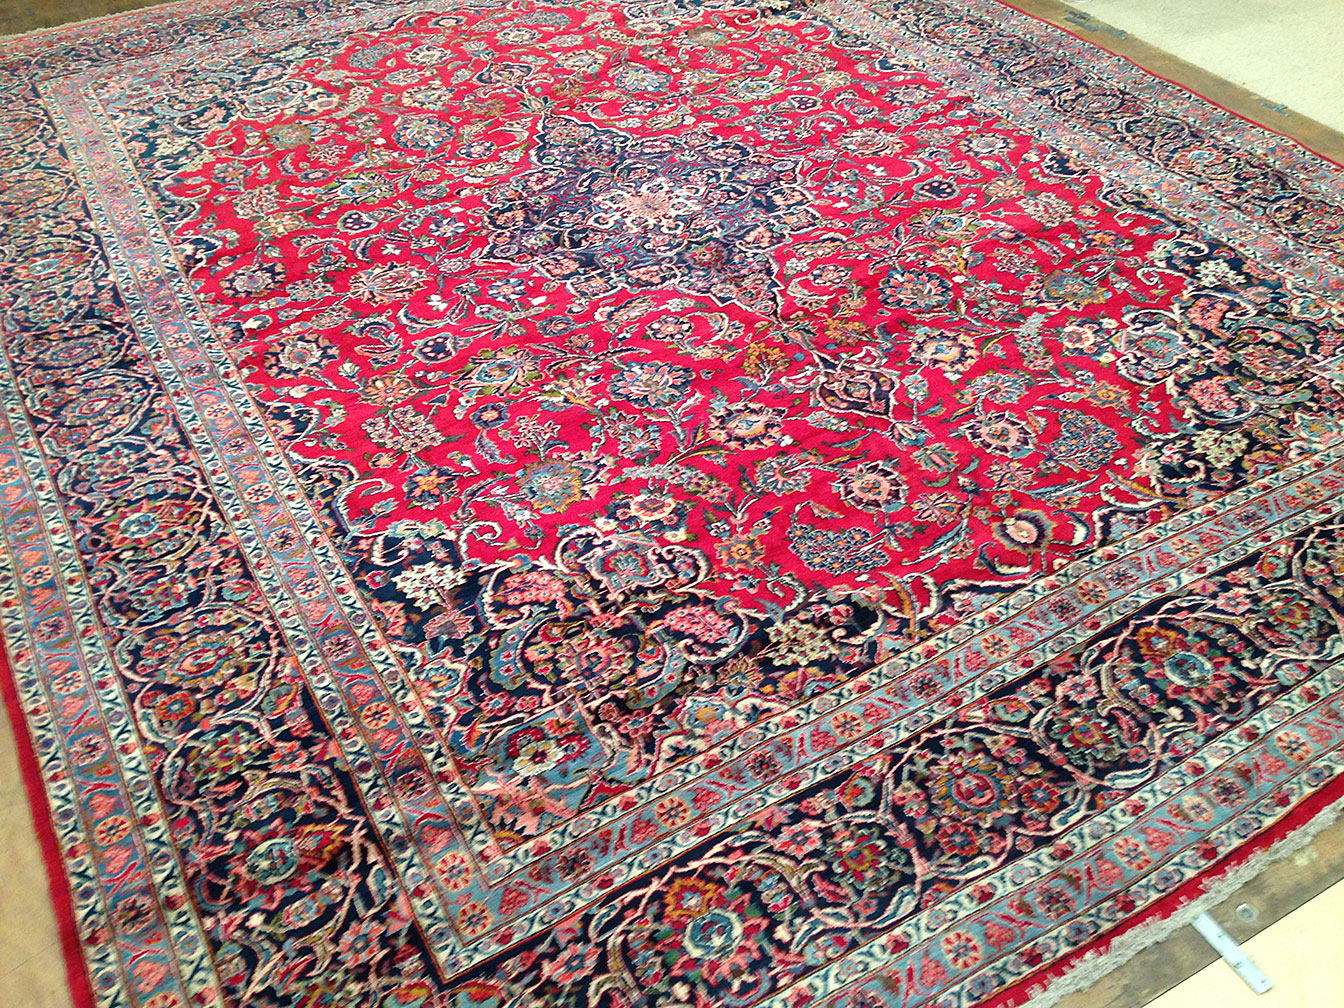 Antique kashan Carpet - # 50285